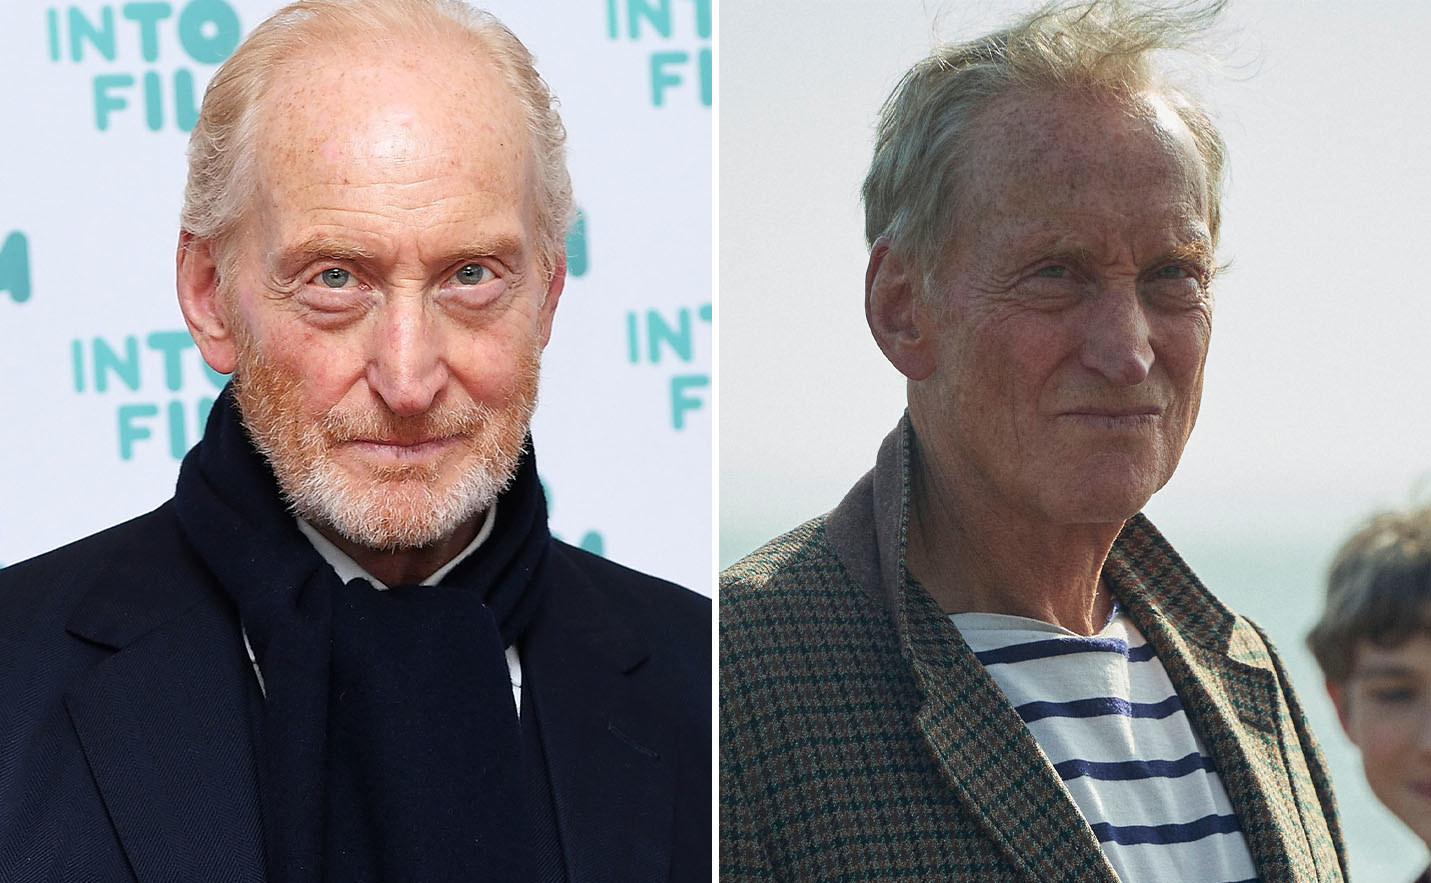 Charles Dance on the left and Charles Dance as Lord Mountbatten on the right